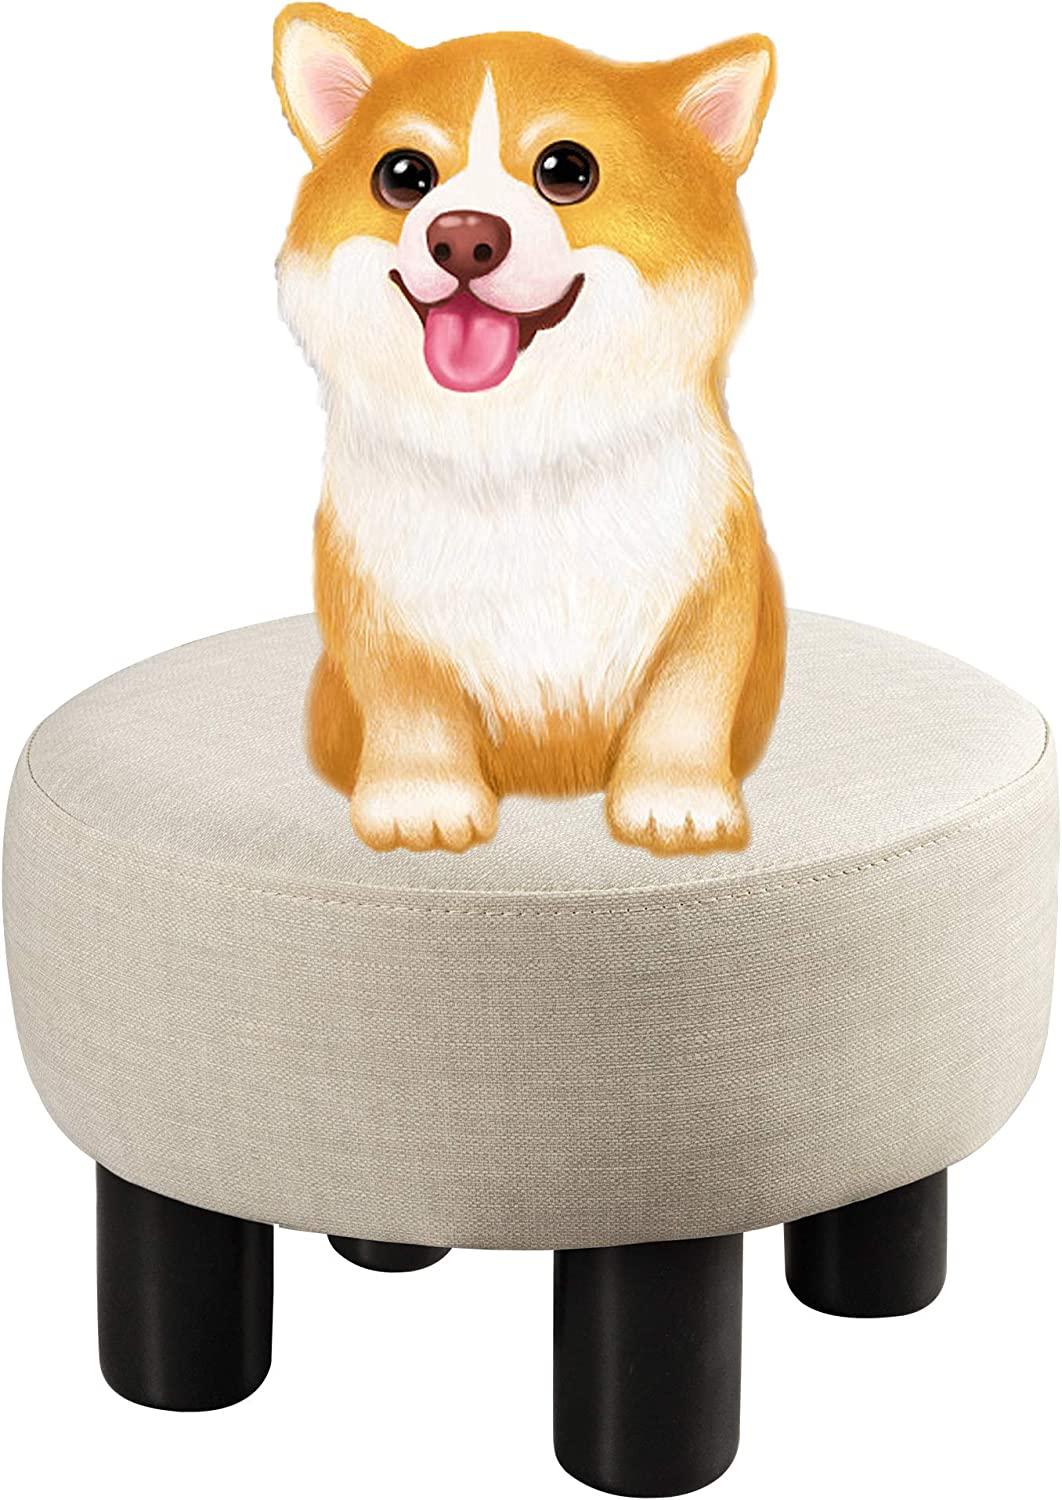 Small Foot Stools Beige, Round PU Leather Padded Ottoman Foot Rest with Non-Skid Plastic Legs, Footstools and Ottomans Small Comfy Footstool upholstered for Couch, Desk, Office, Living Room